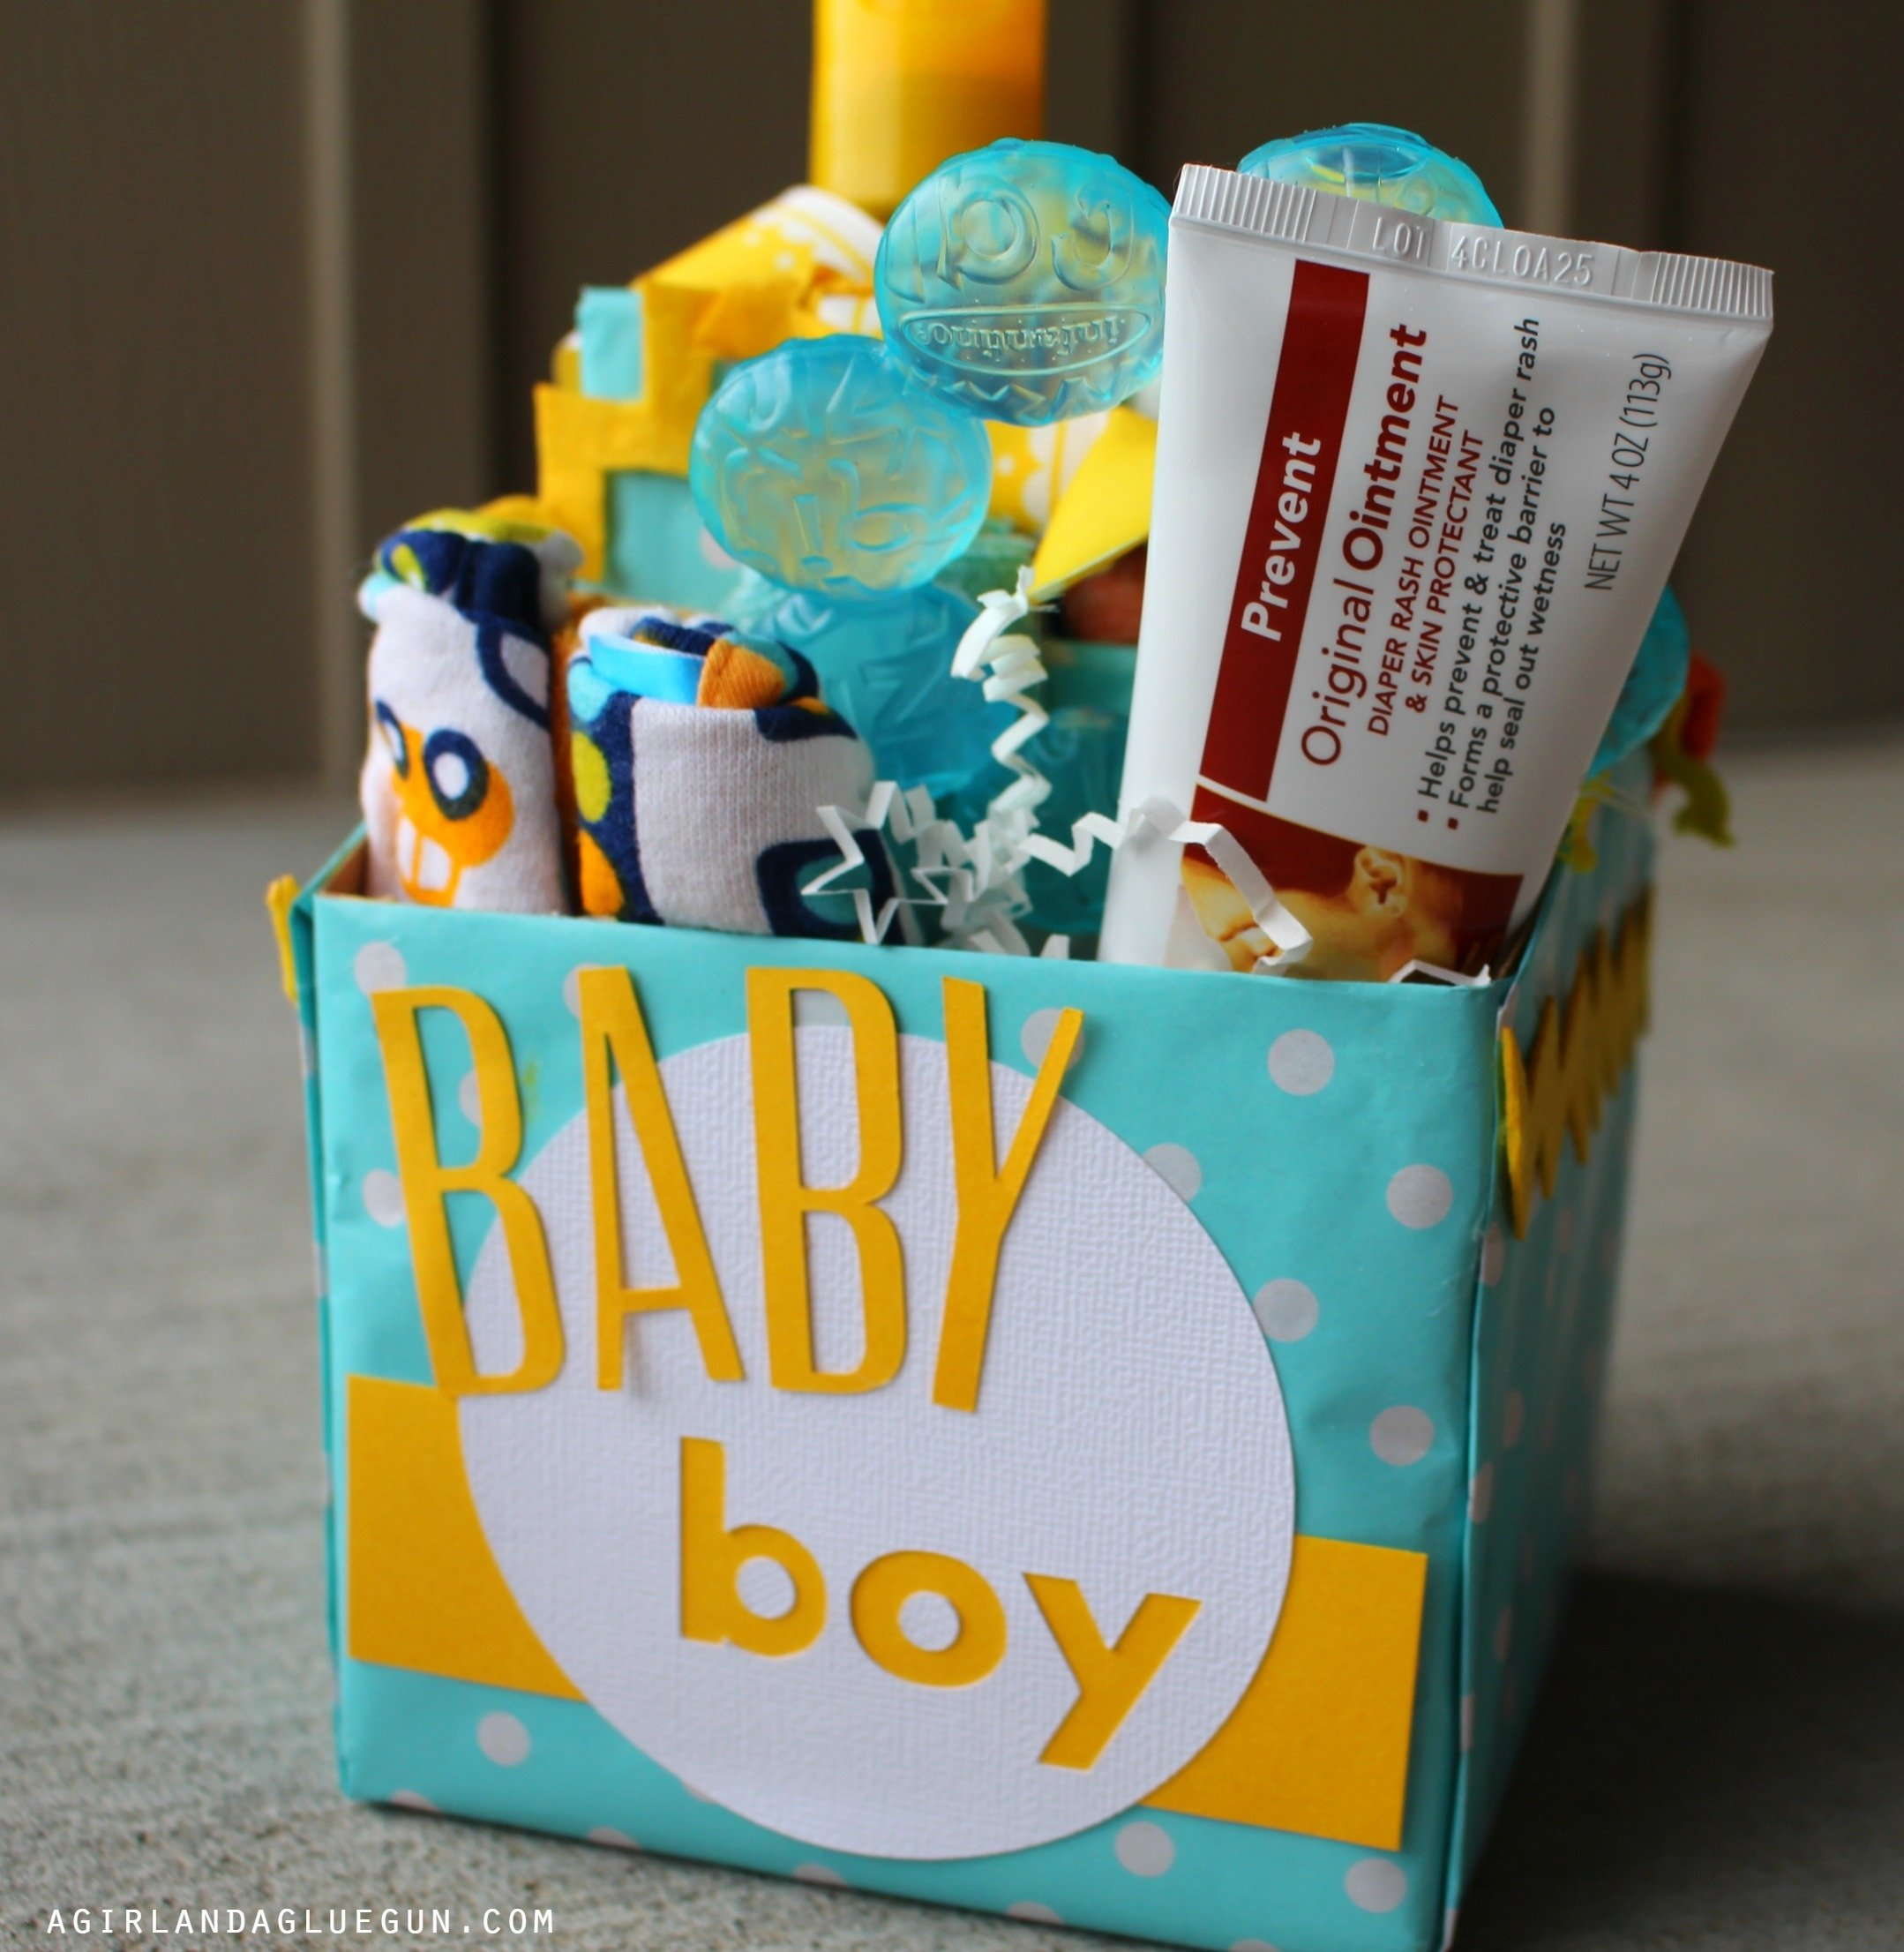 10 Fabulous Ideas For Baby Shower Gifts maxresdefault sensational baby shower gifts for boy ideas gift twins 1 2020